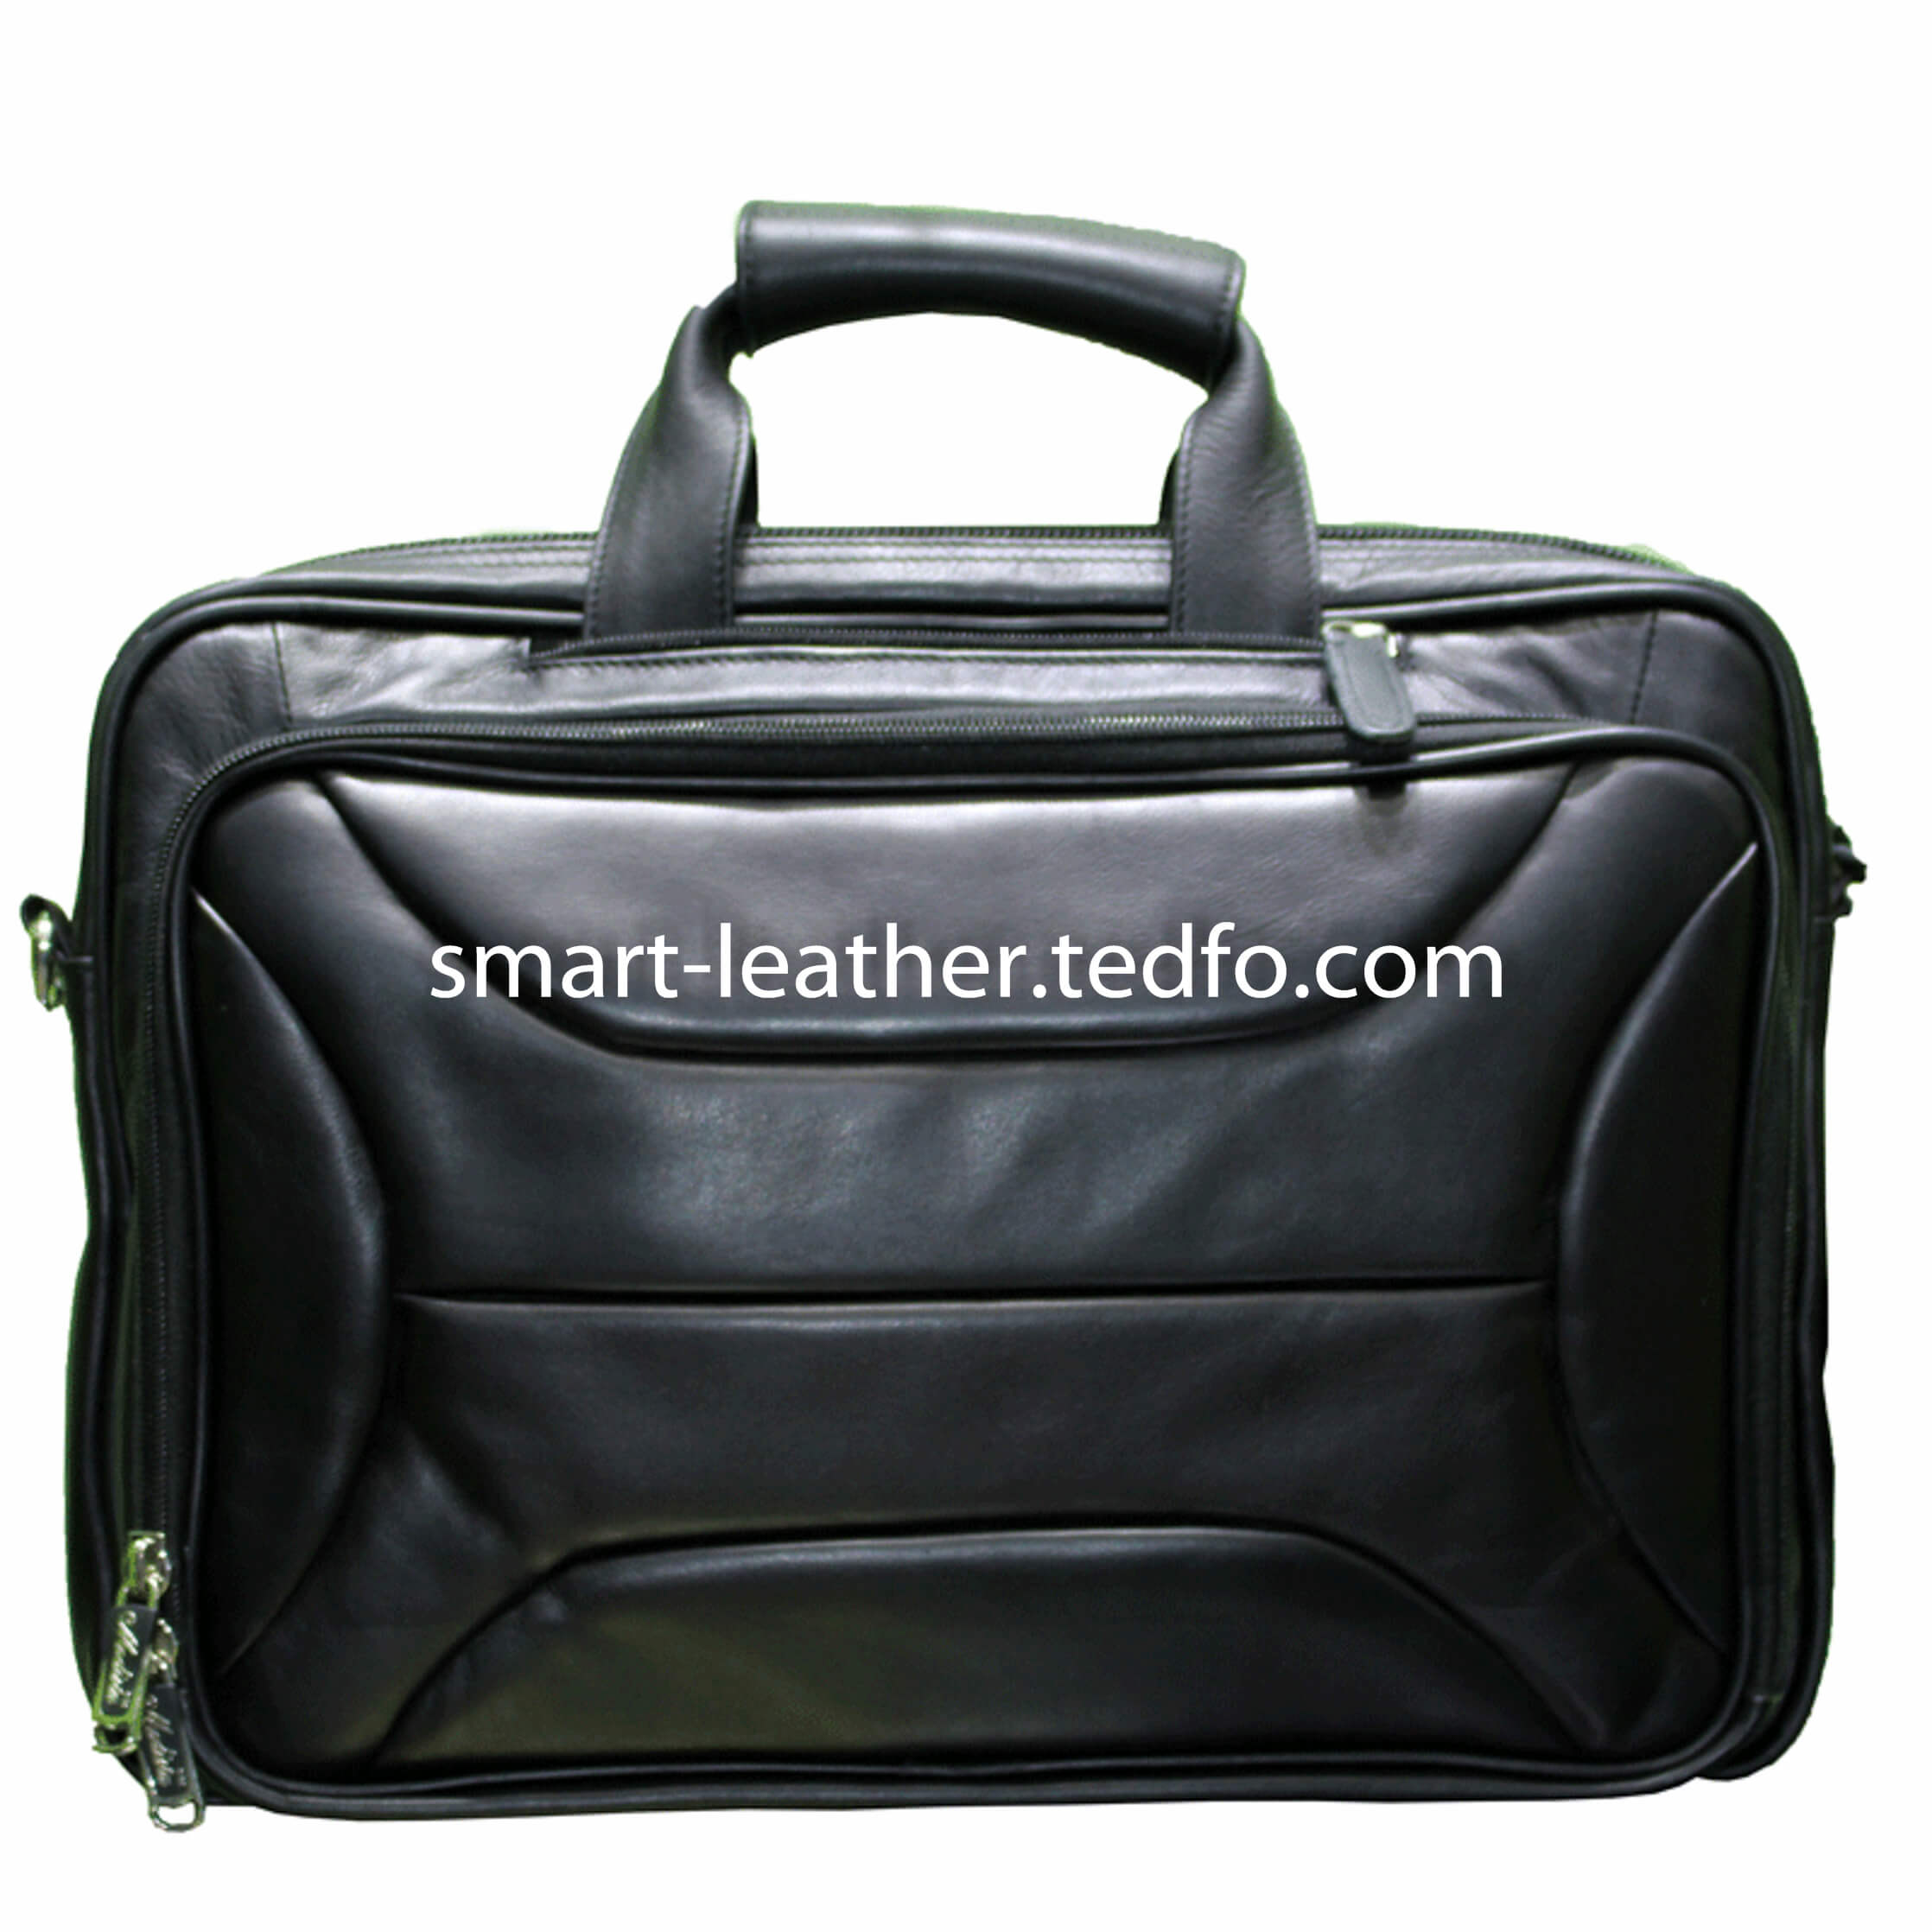 Executive Laptop Bag Manufacturer Supplier and Exporter from Bangladesh